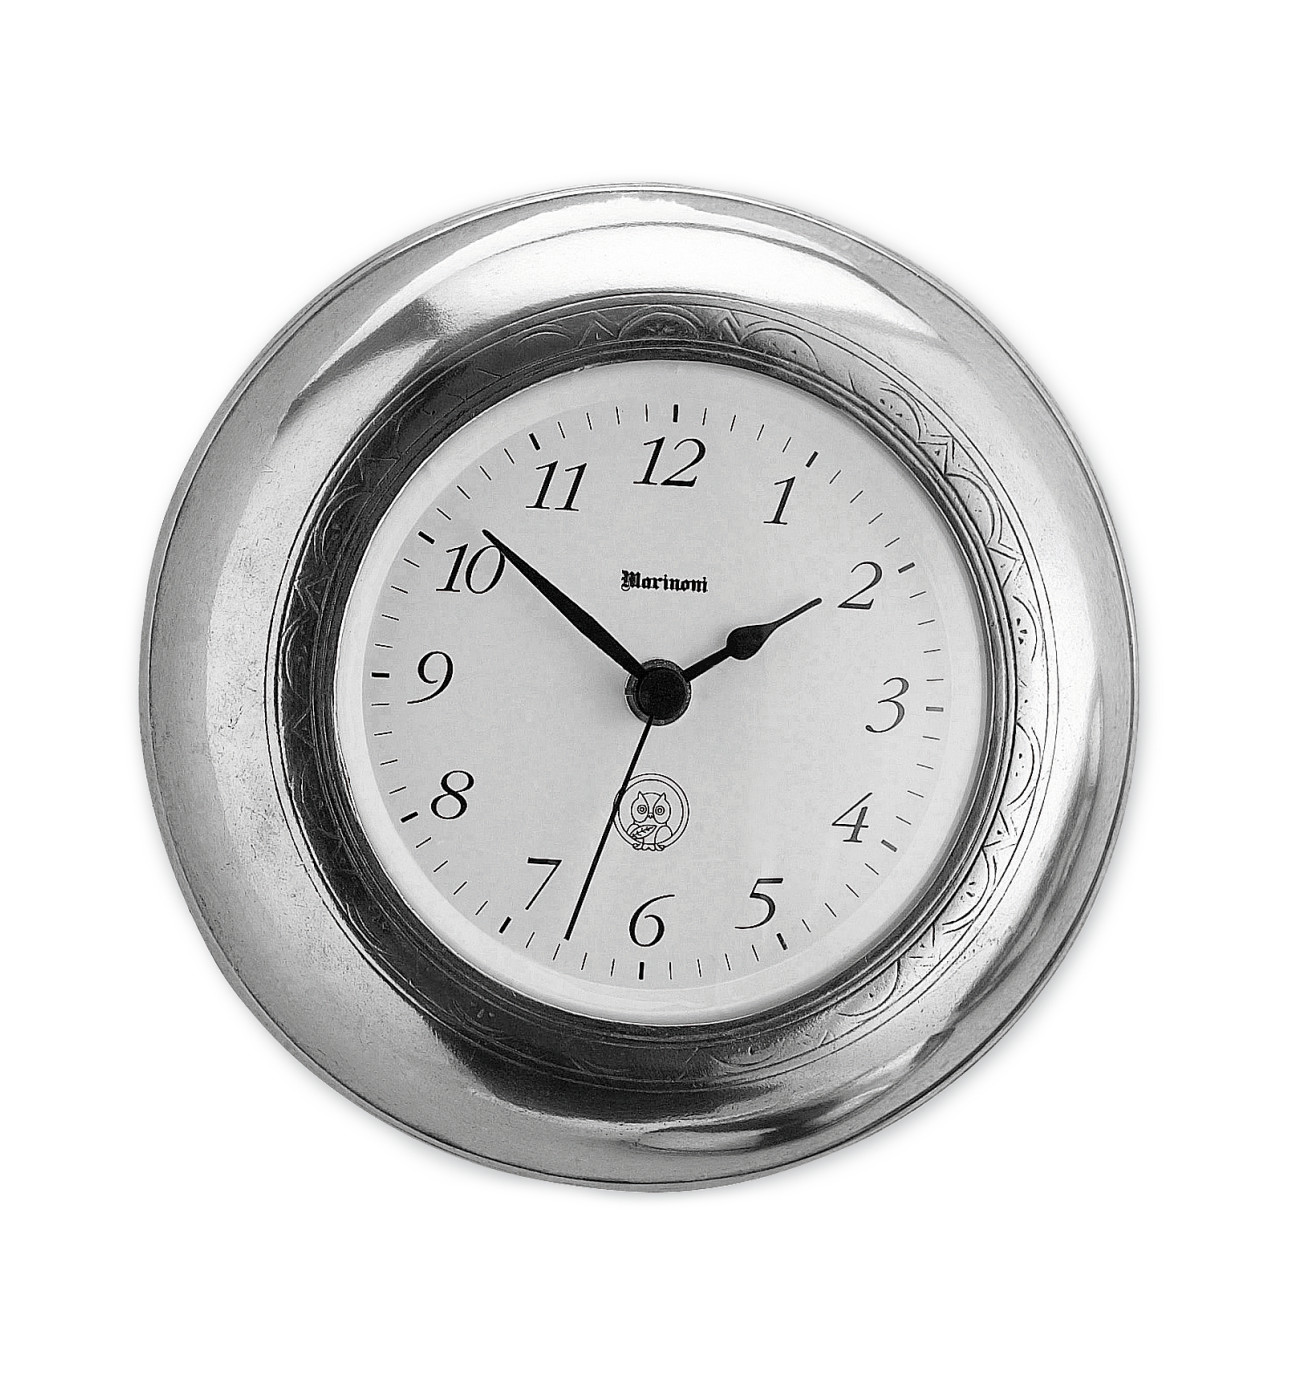 Clocks home decor david jones clock 19cm amipublicfo Image collections